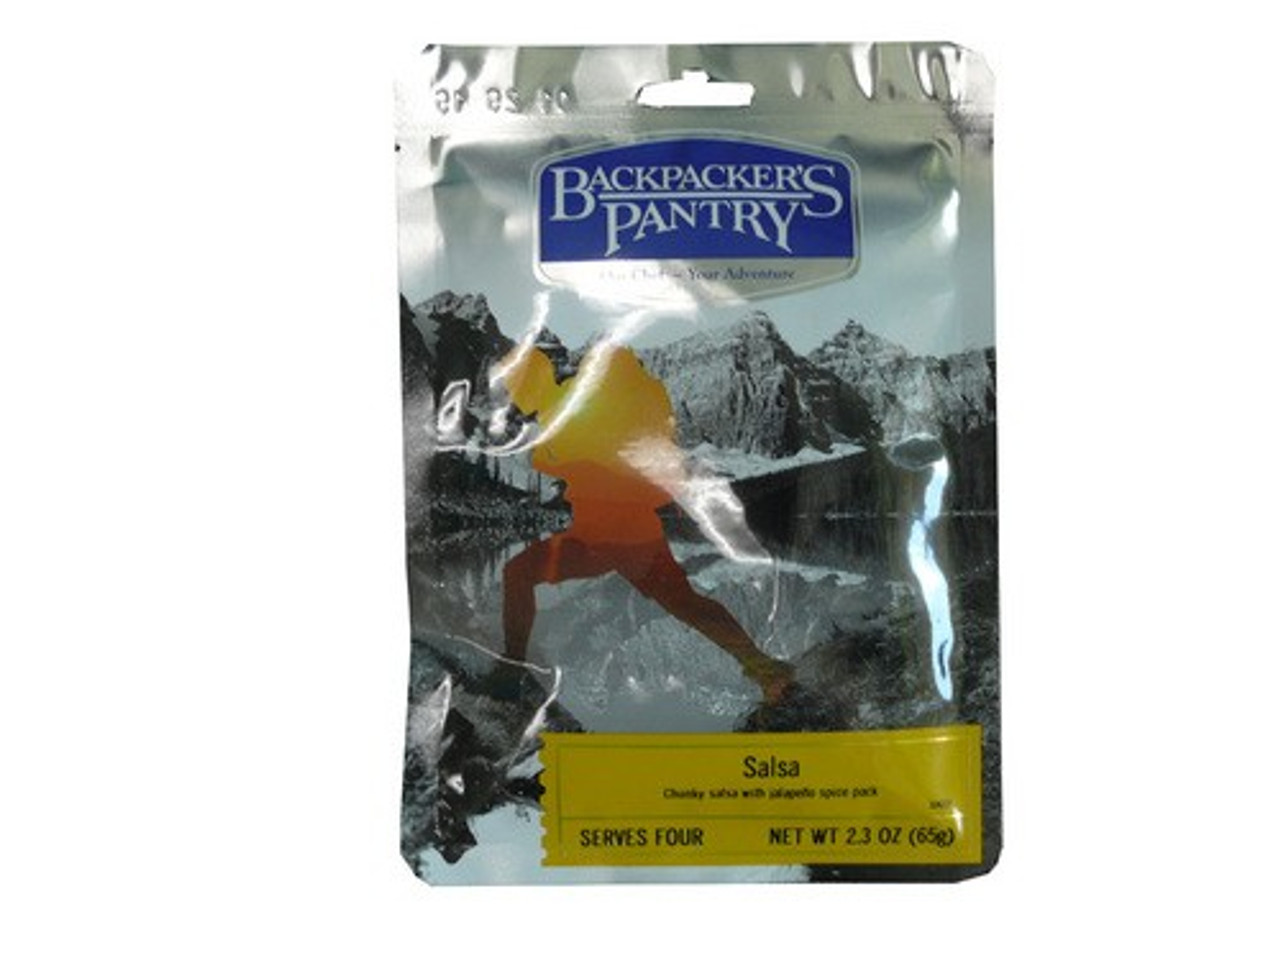 Backpacker's Pantry Salsa Mix Pouch